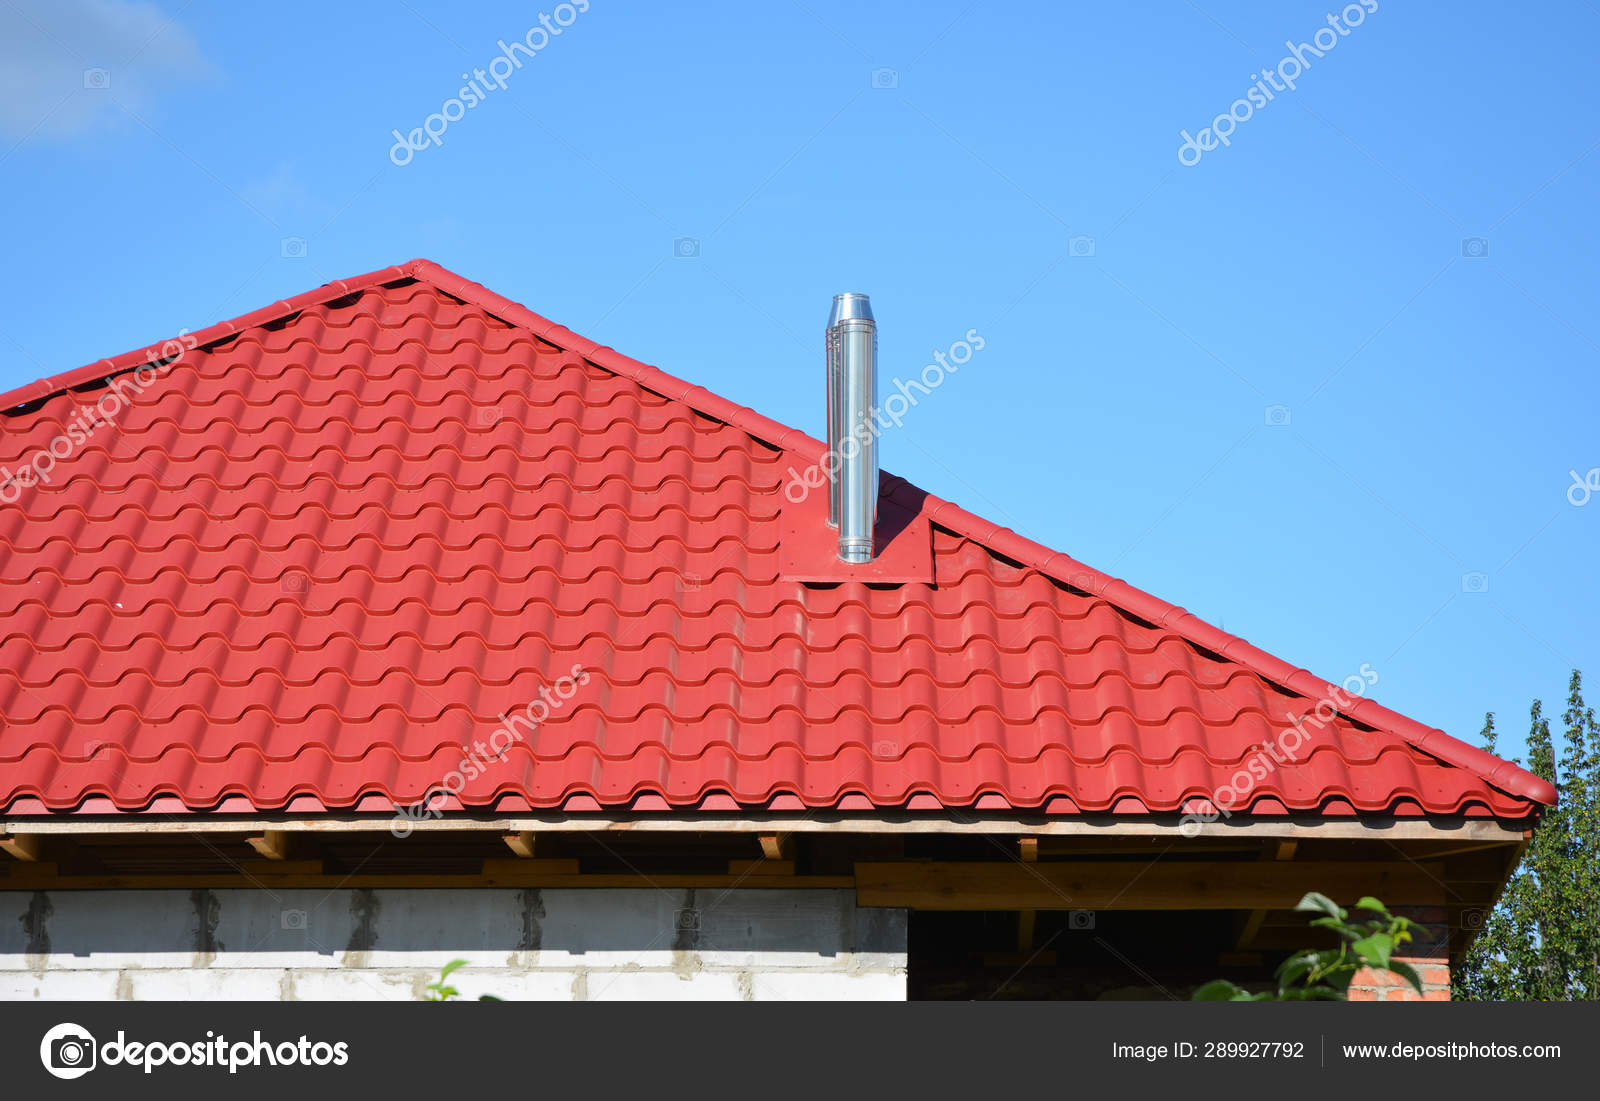 Lightweight Red Metal Roof Tiles Roofing Construction With Steel